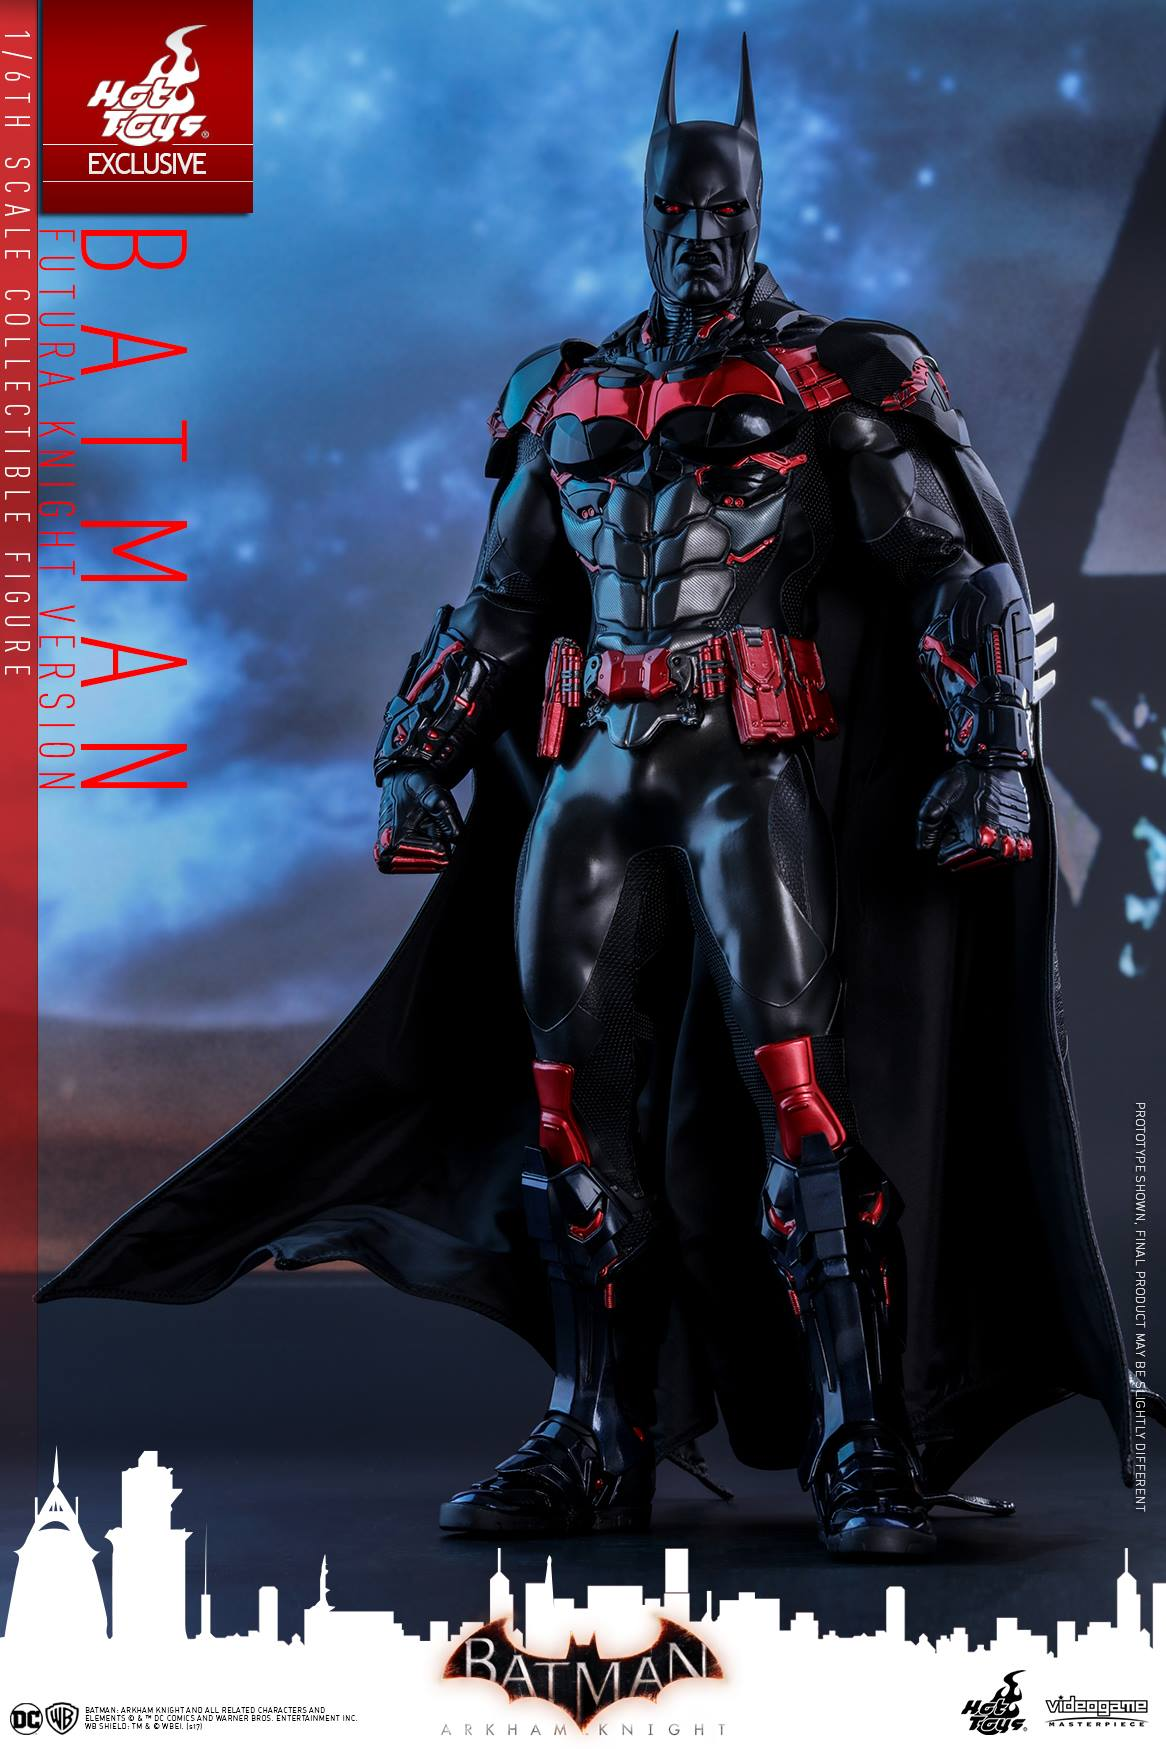 Hot Toys Reveals Their Incredible Batman Beyond Action Figure From